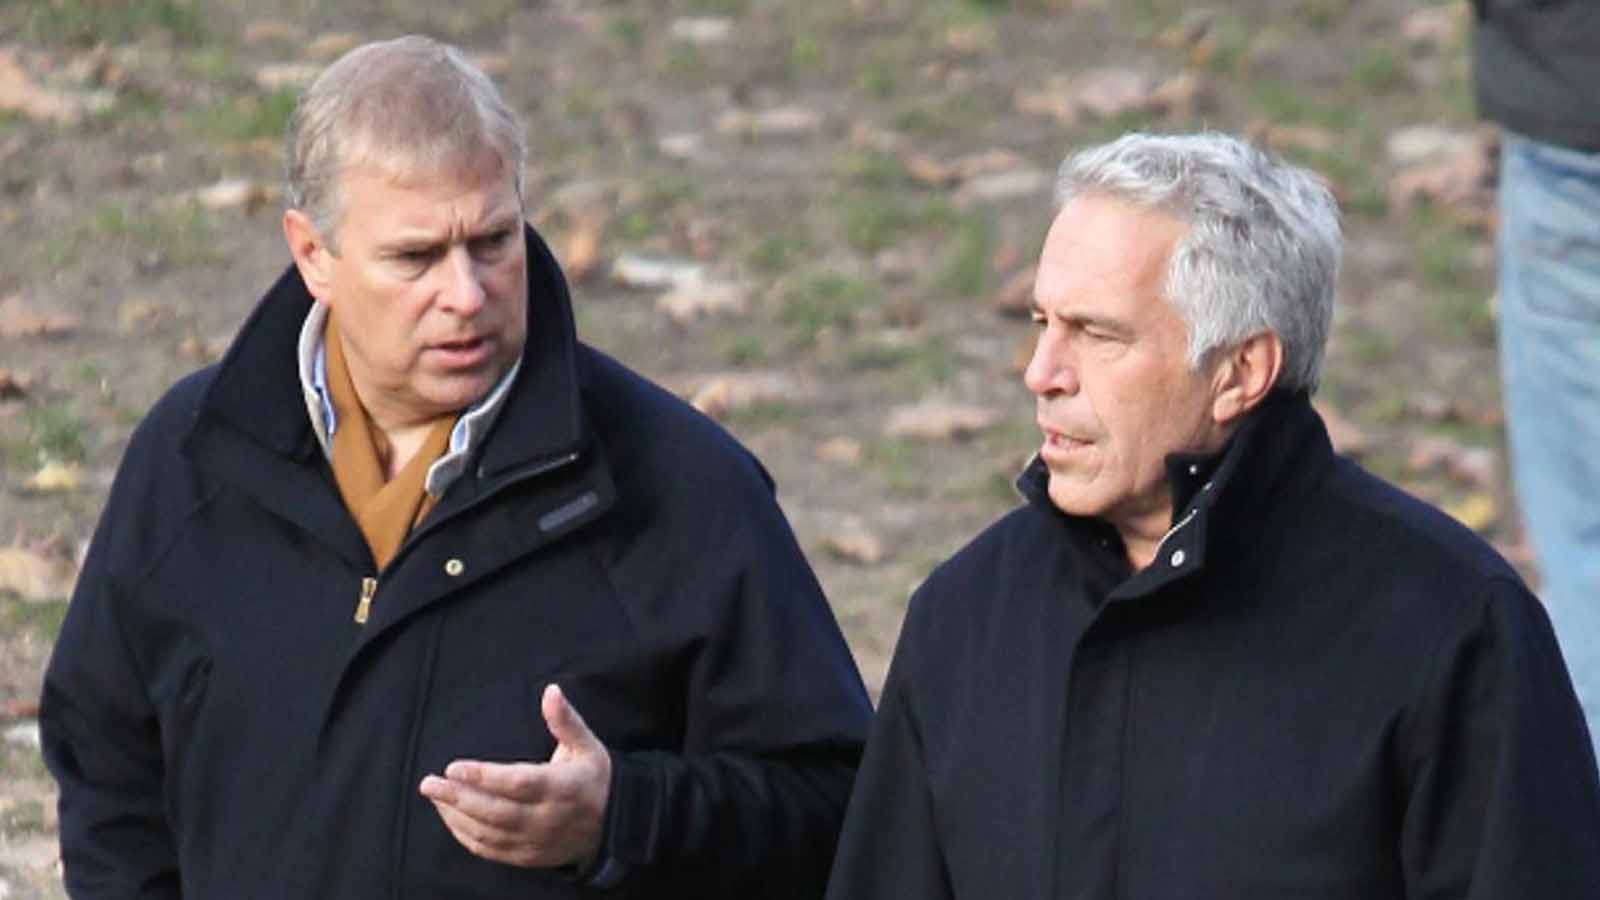 The Royal family recently updated their website, removing nearly any mention of Prince Andrew. Are they trying to distance themselves from him and Epstein?